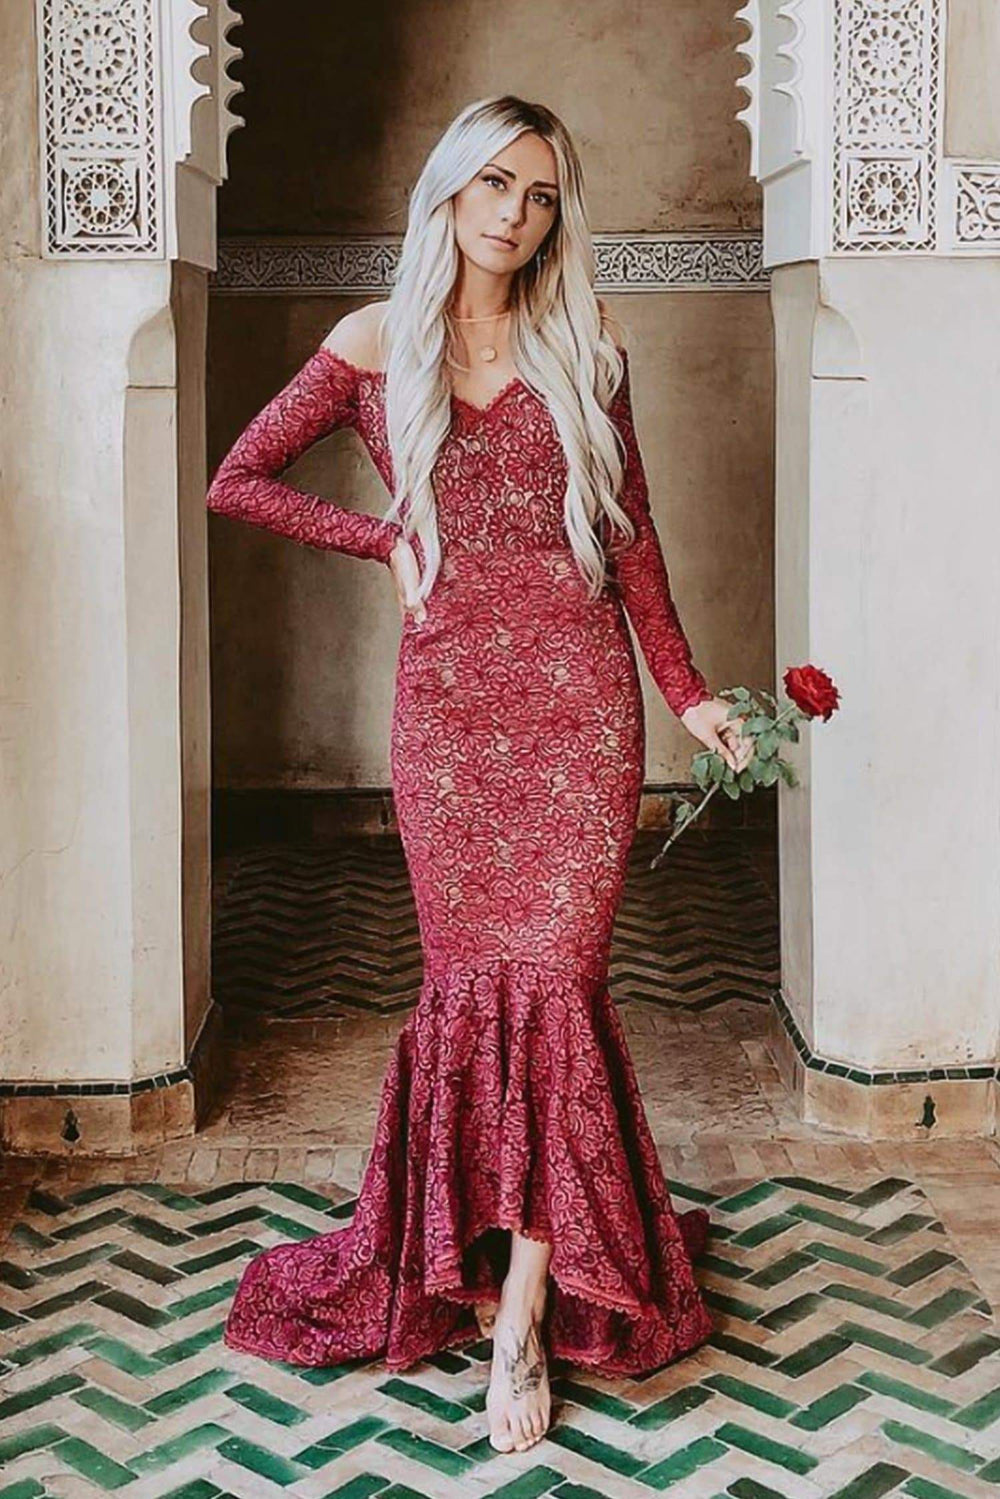 Margarita - Burgundy Off-Shoulder Long Sleeve Gown with Mermaid Train